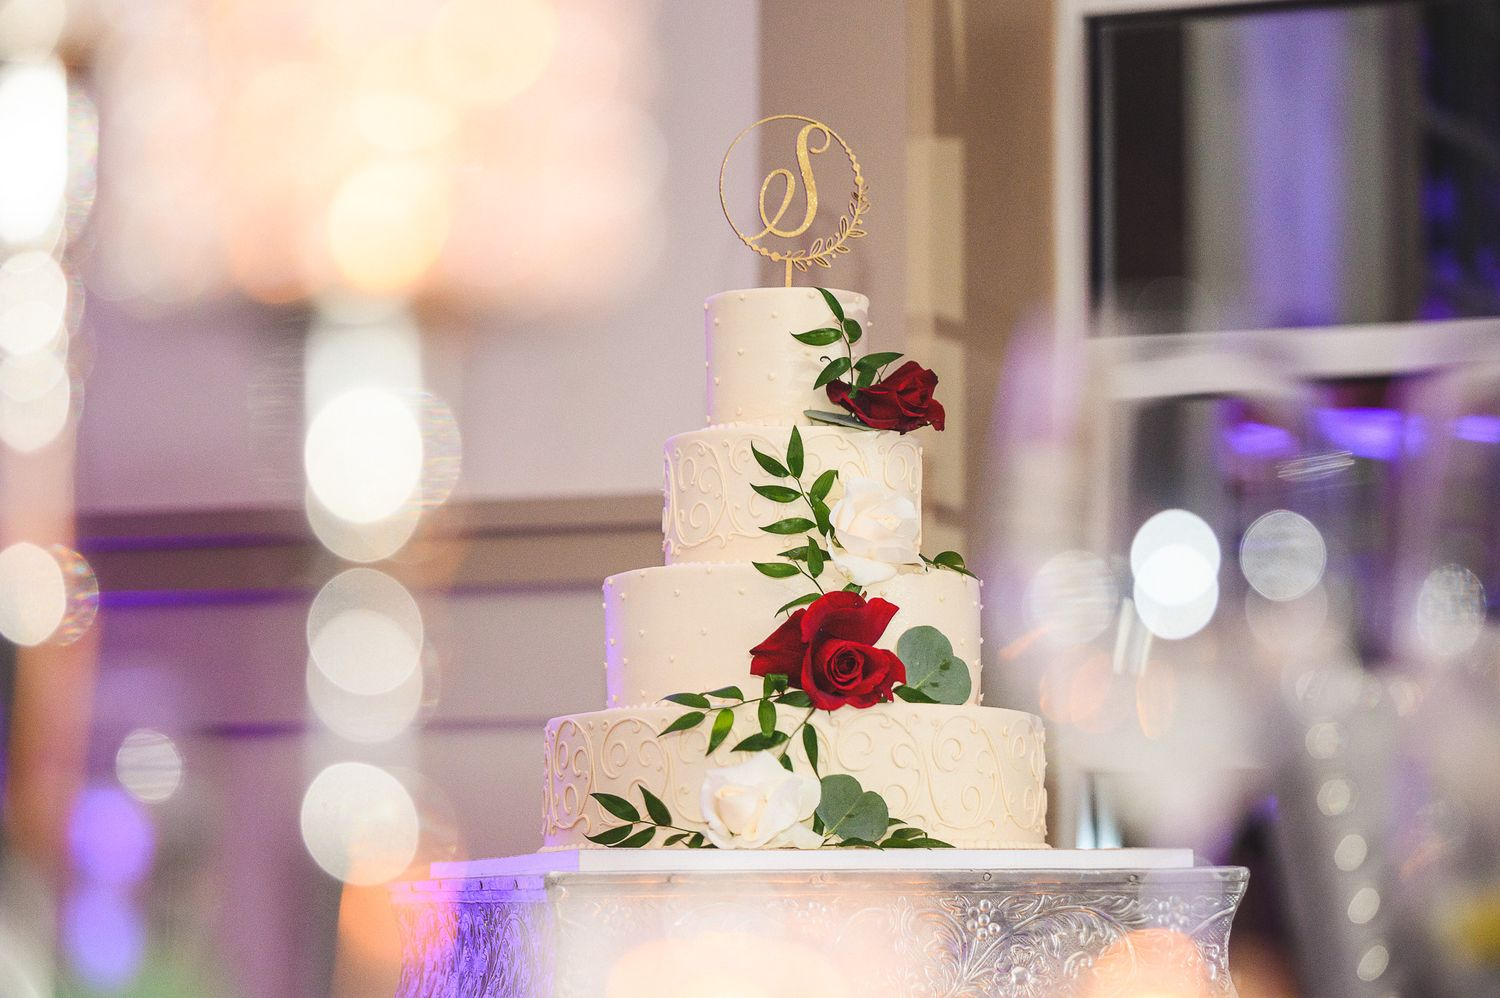 bride and groom cake details